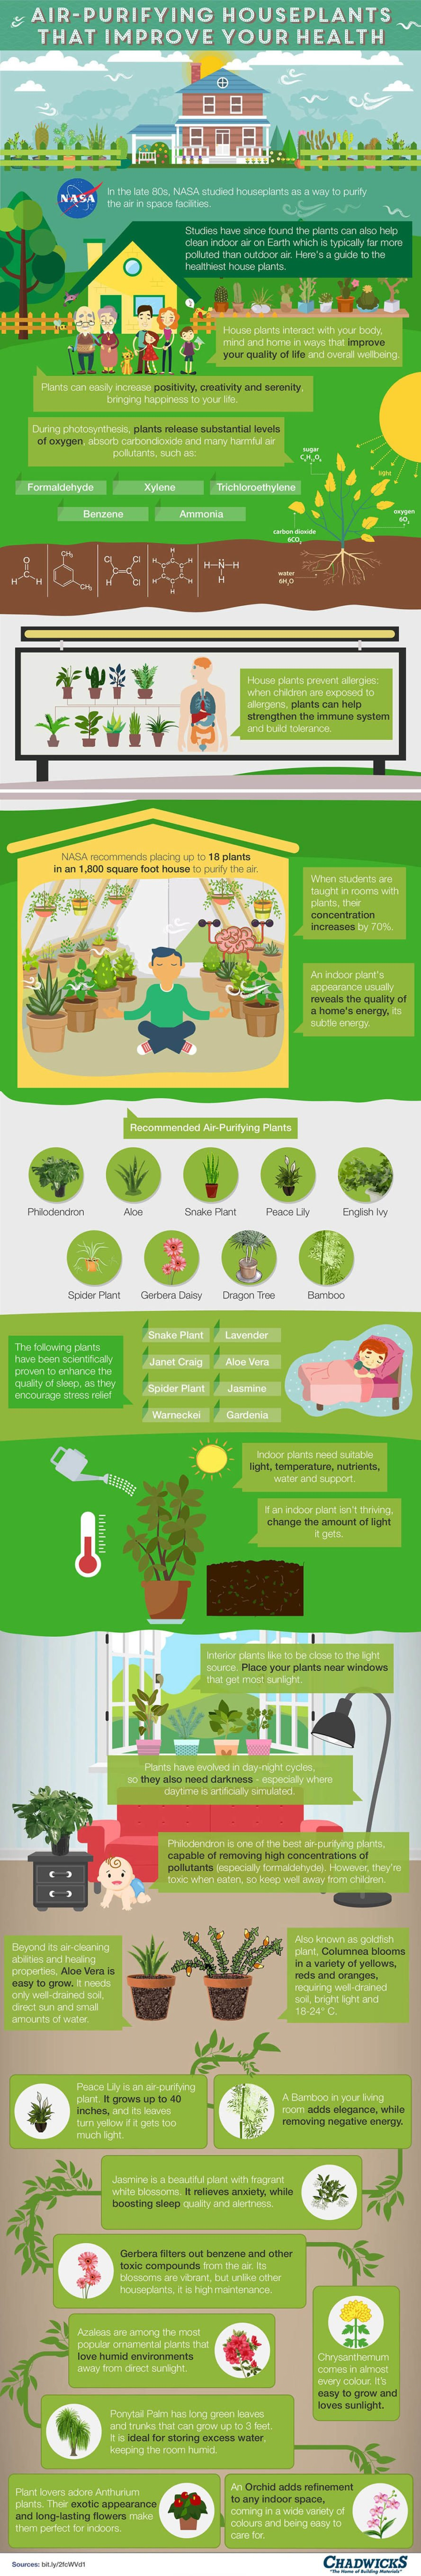 air-purifying-houseplants-infographic-full-889x5446